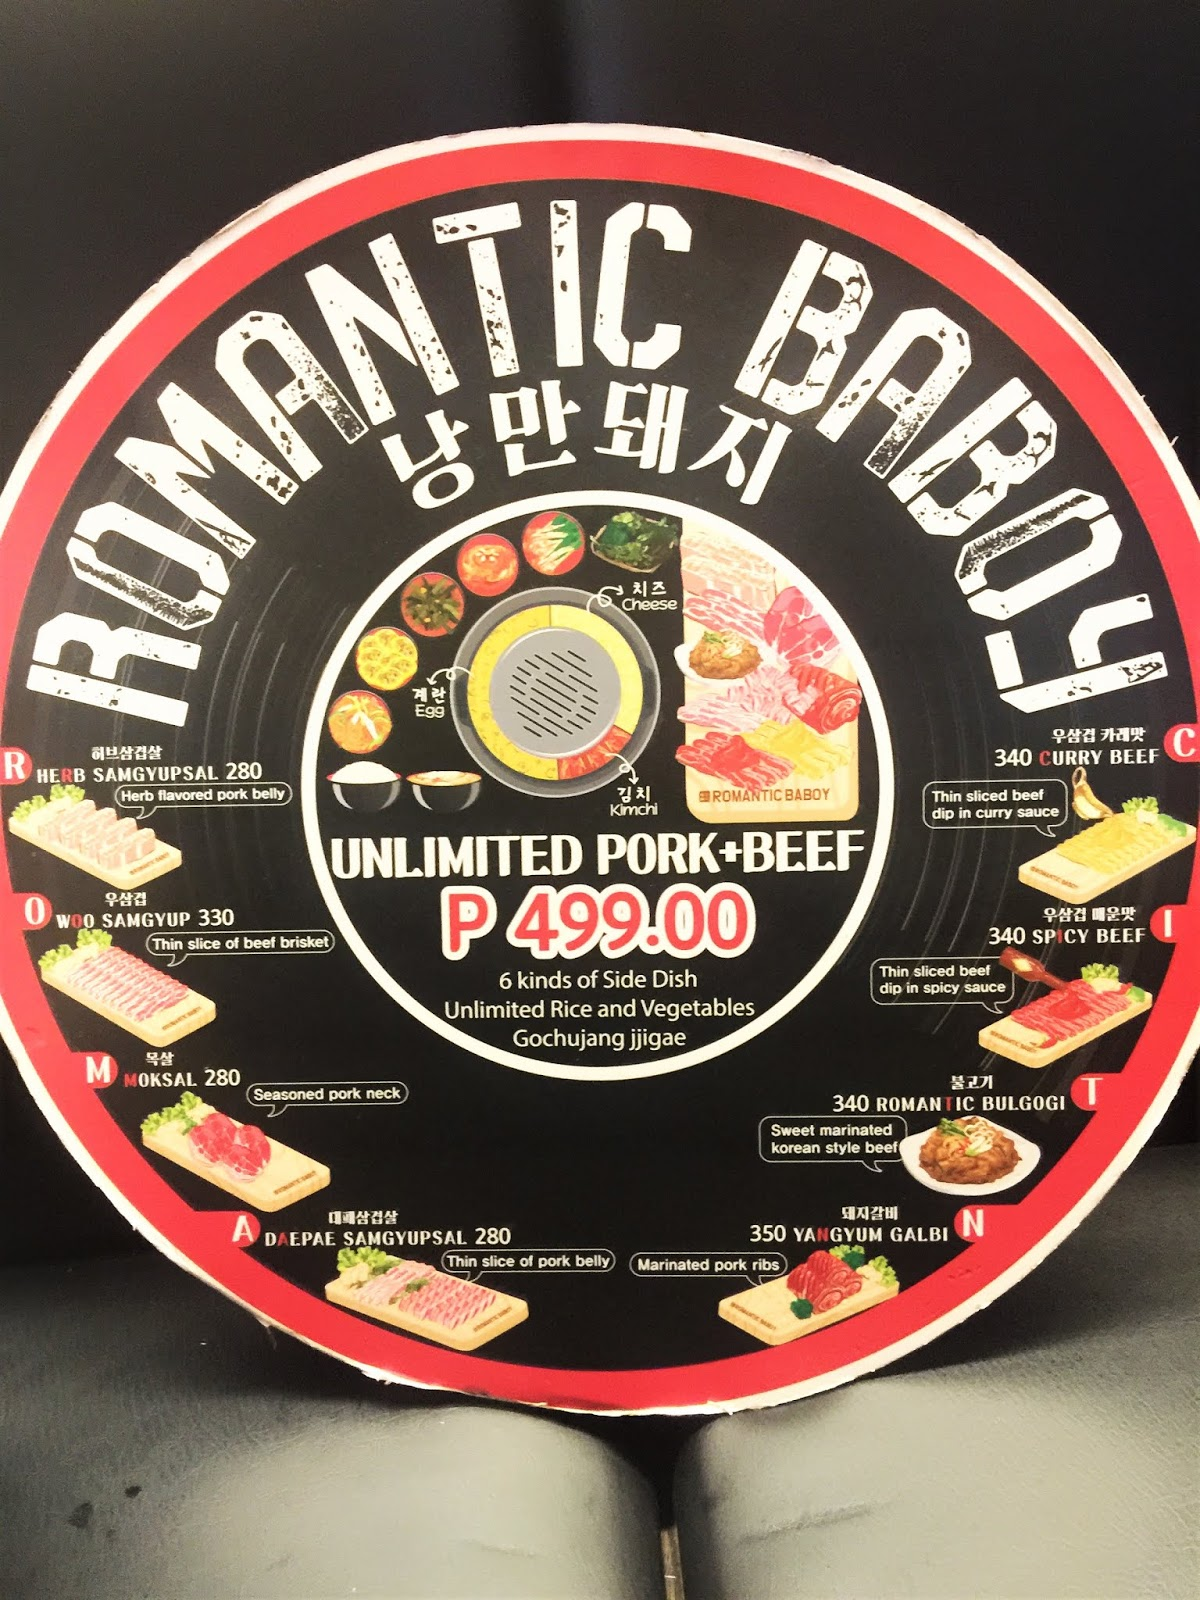 Menu of Romantic Baboy in E. Rodriguez Jr. Avenue, Libis - WTF Review